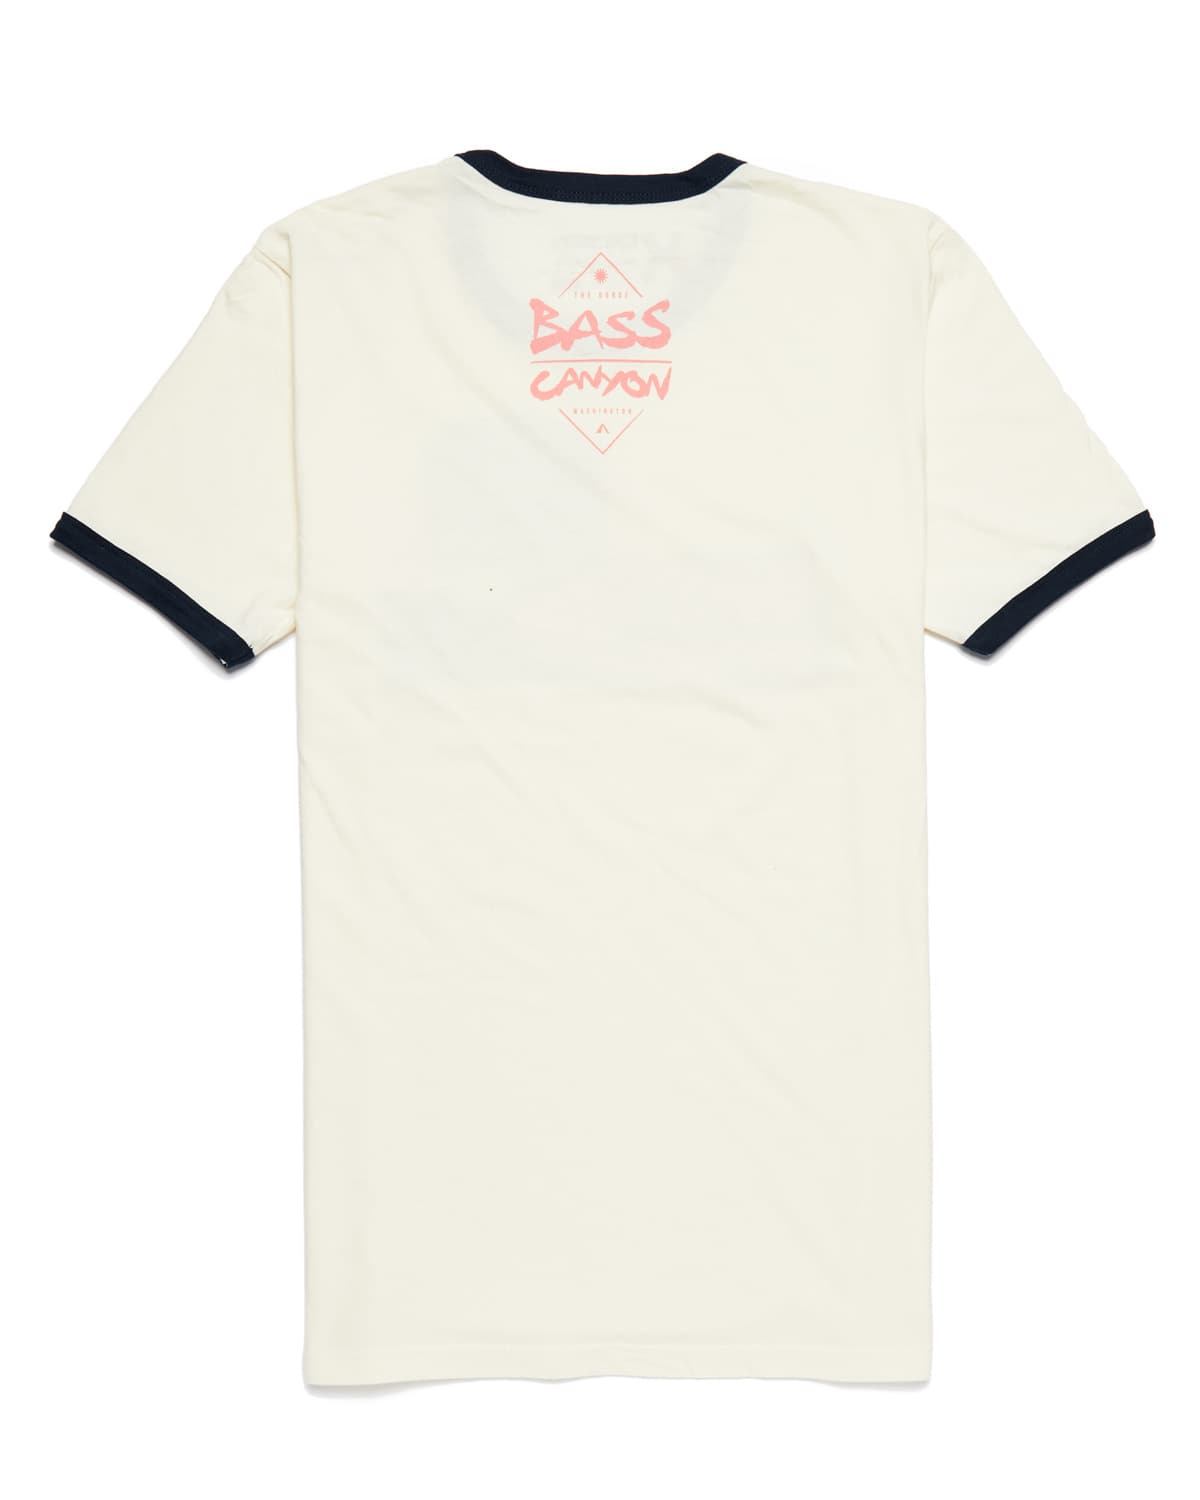 Bass Canyon Retro Summer Camp Tee